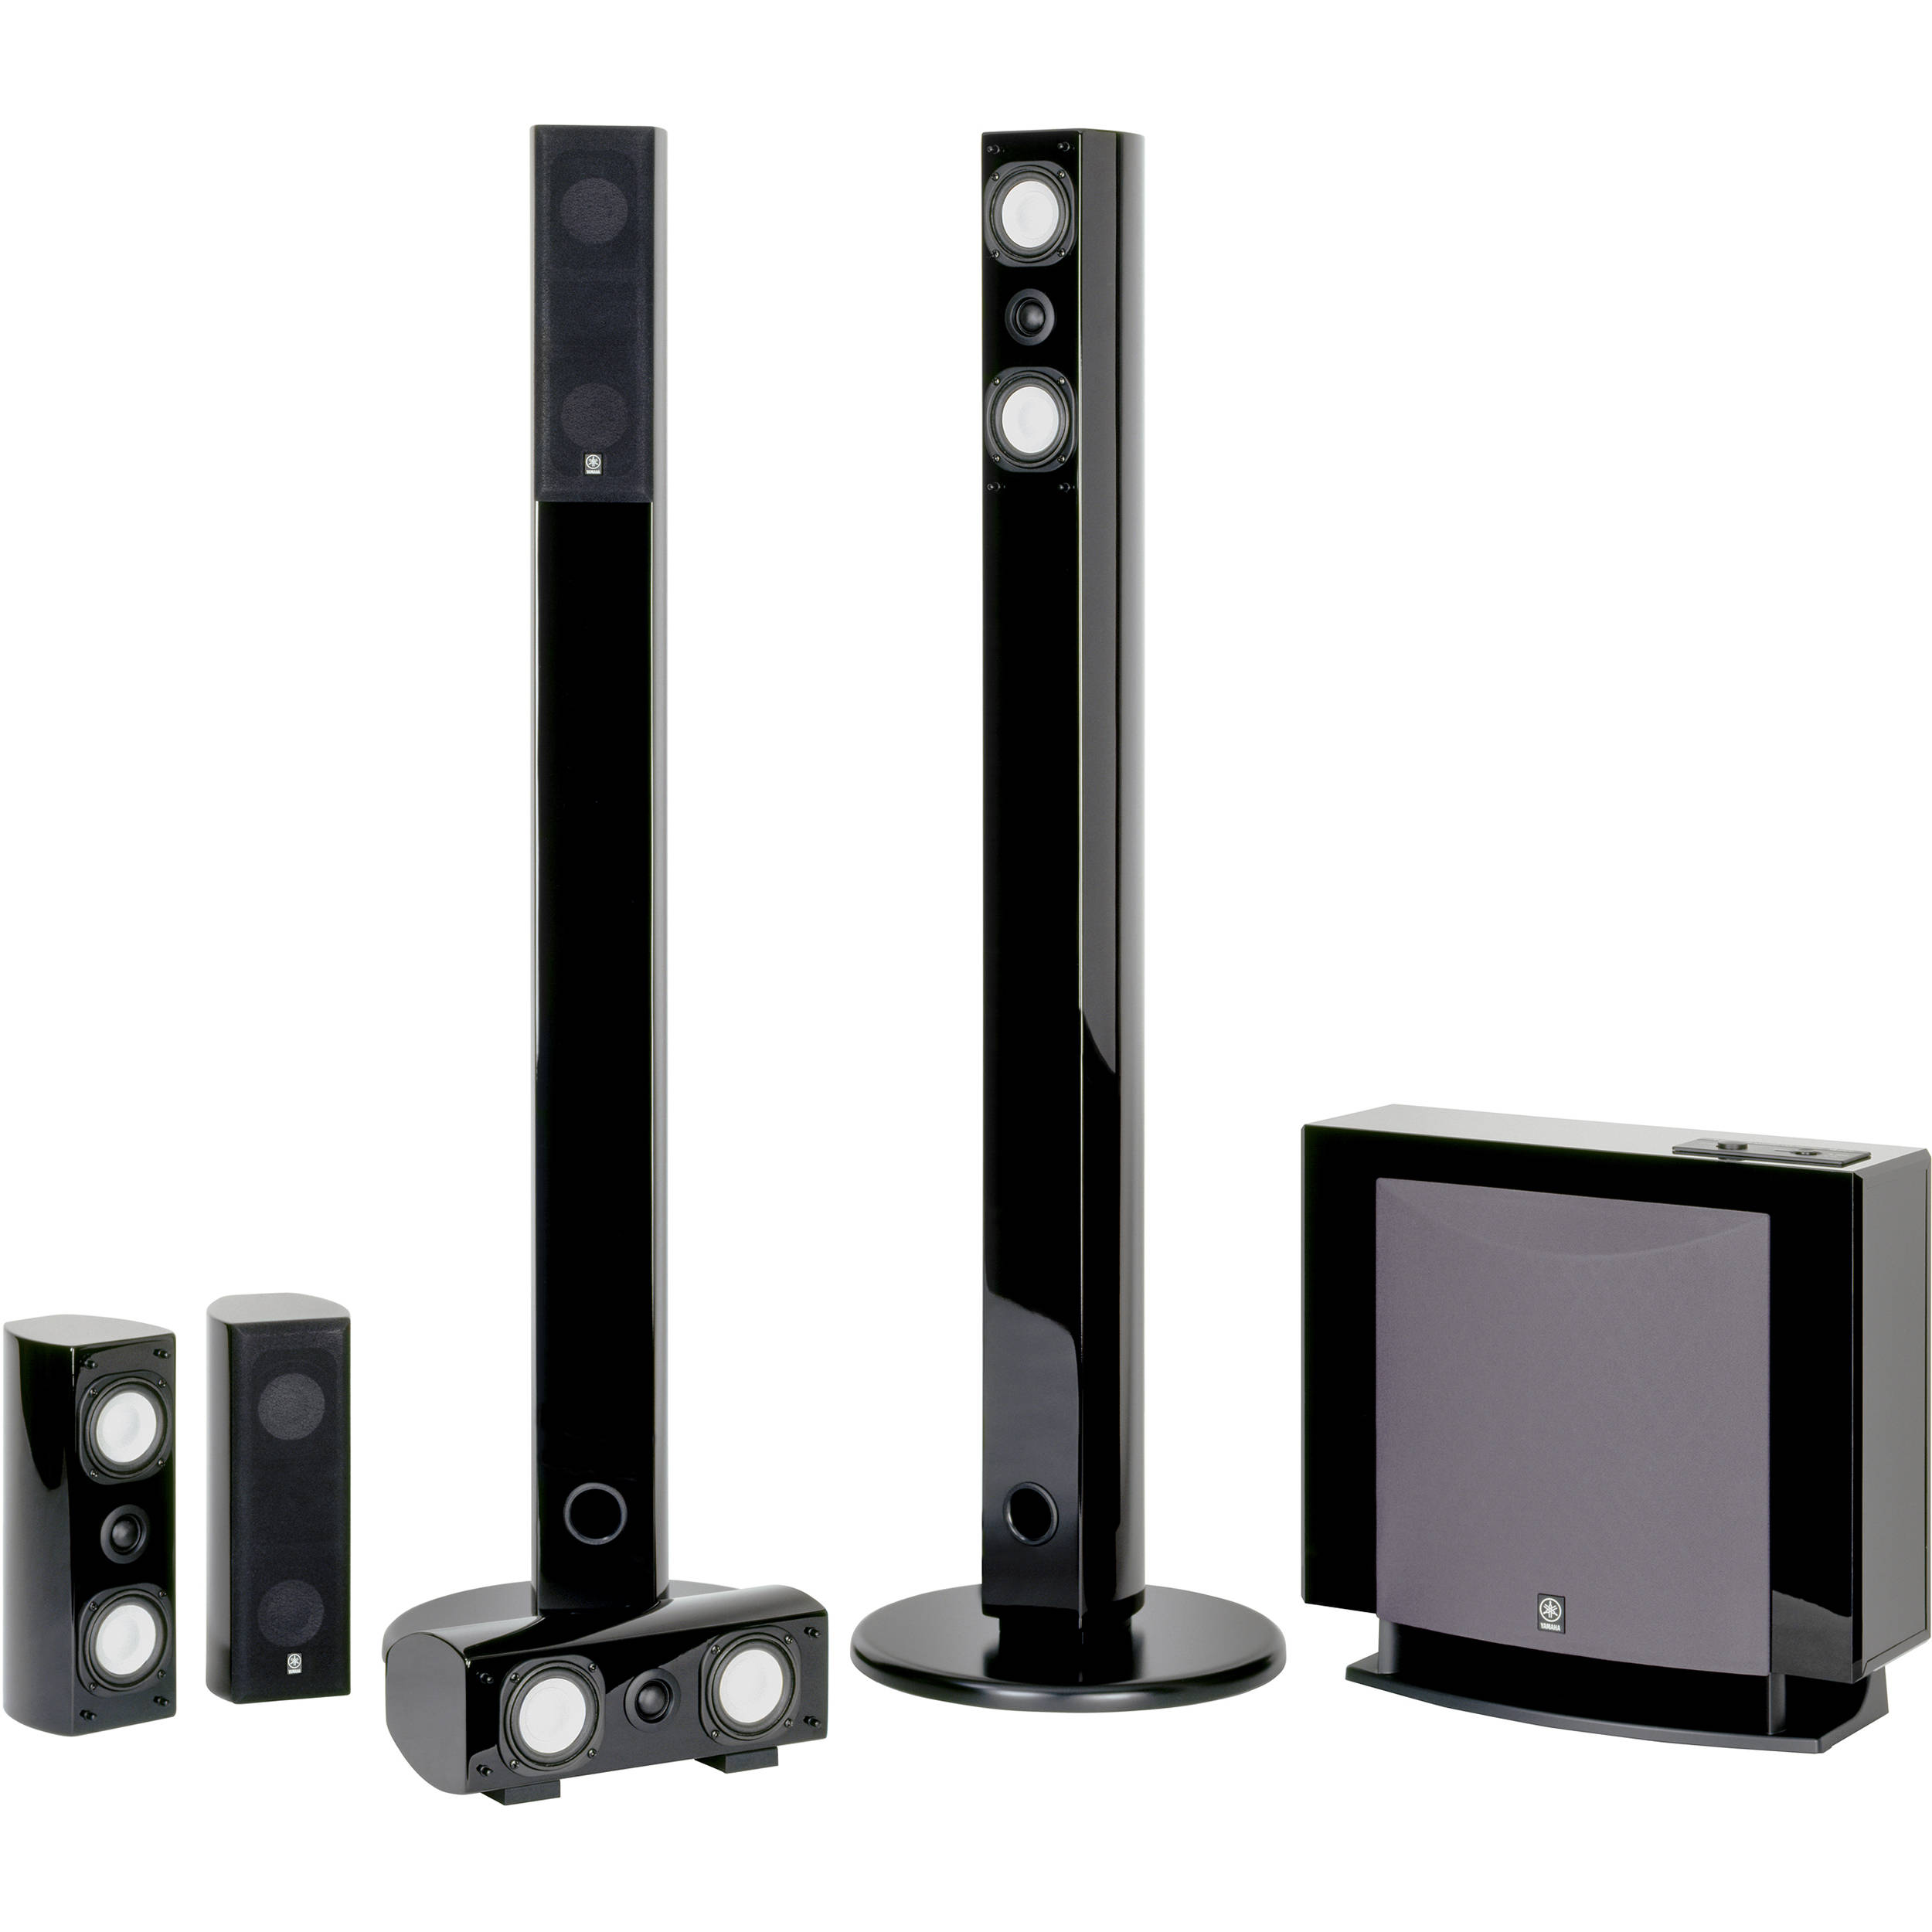 Yamaha ns sp7800pn 5 1 channel home theater speaker ns for Yamaha sound system